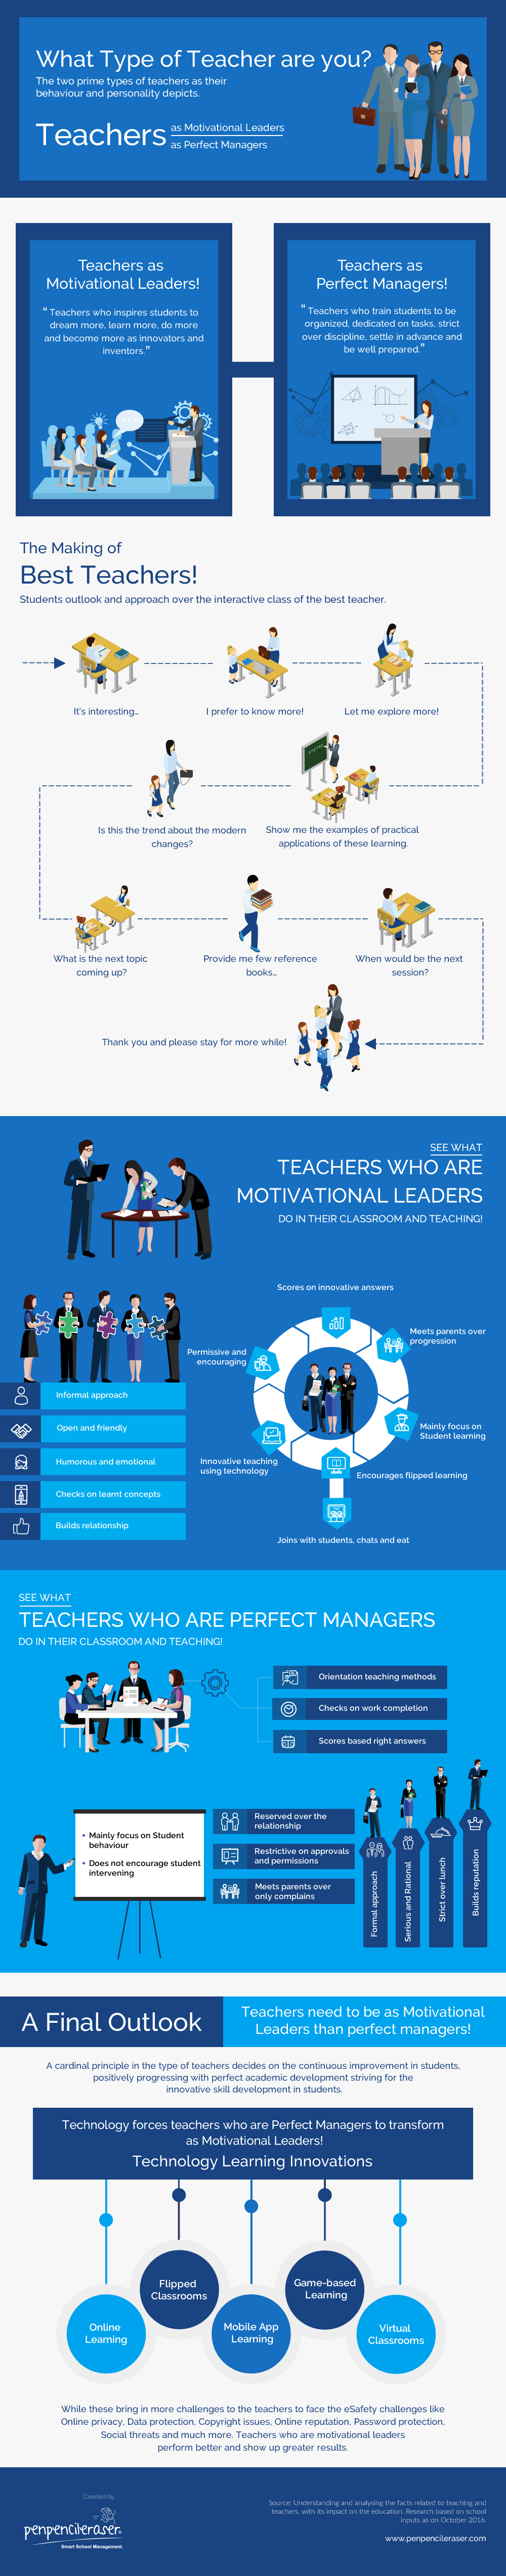 Perfect Manager Vs Motivational Leader: Which Teacher are You? - Infographic